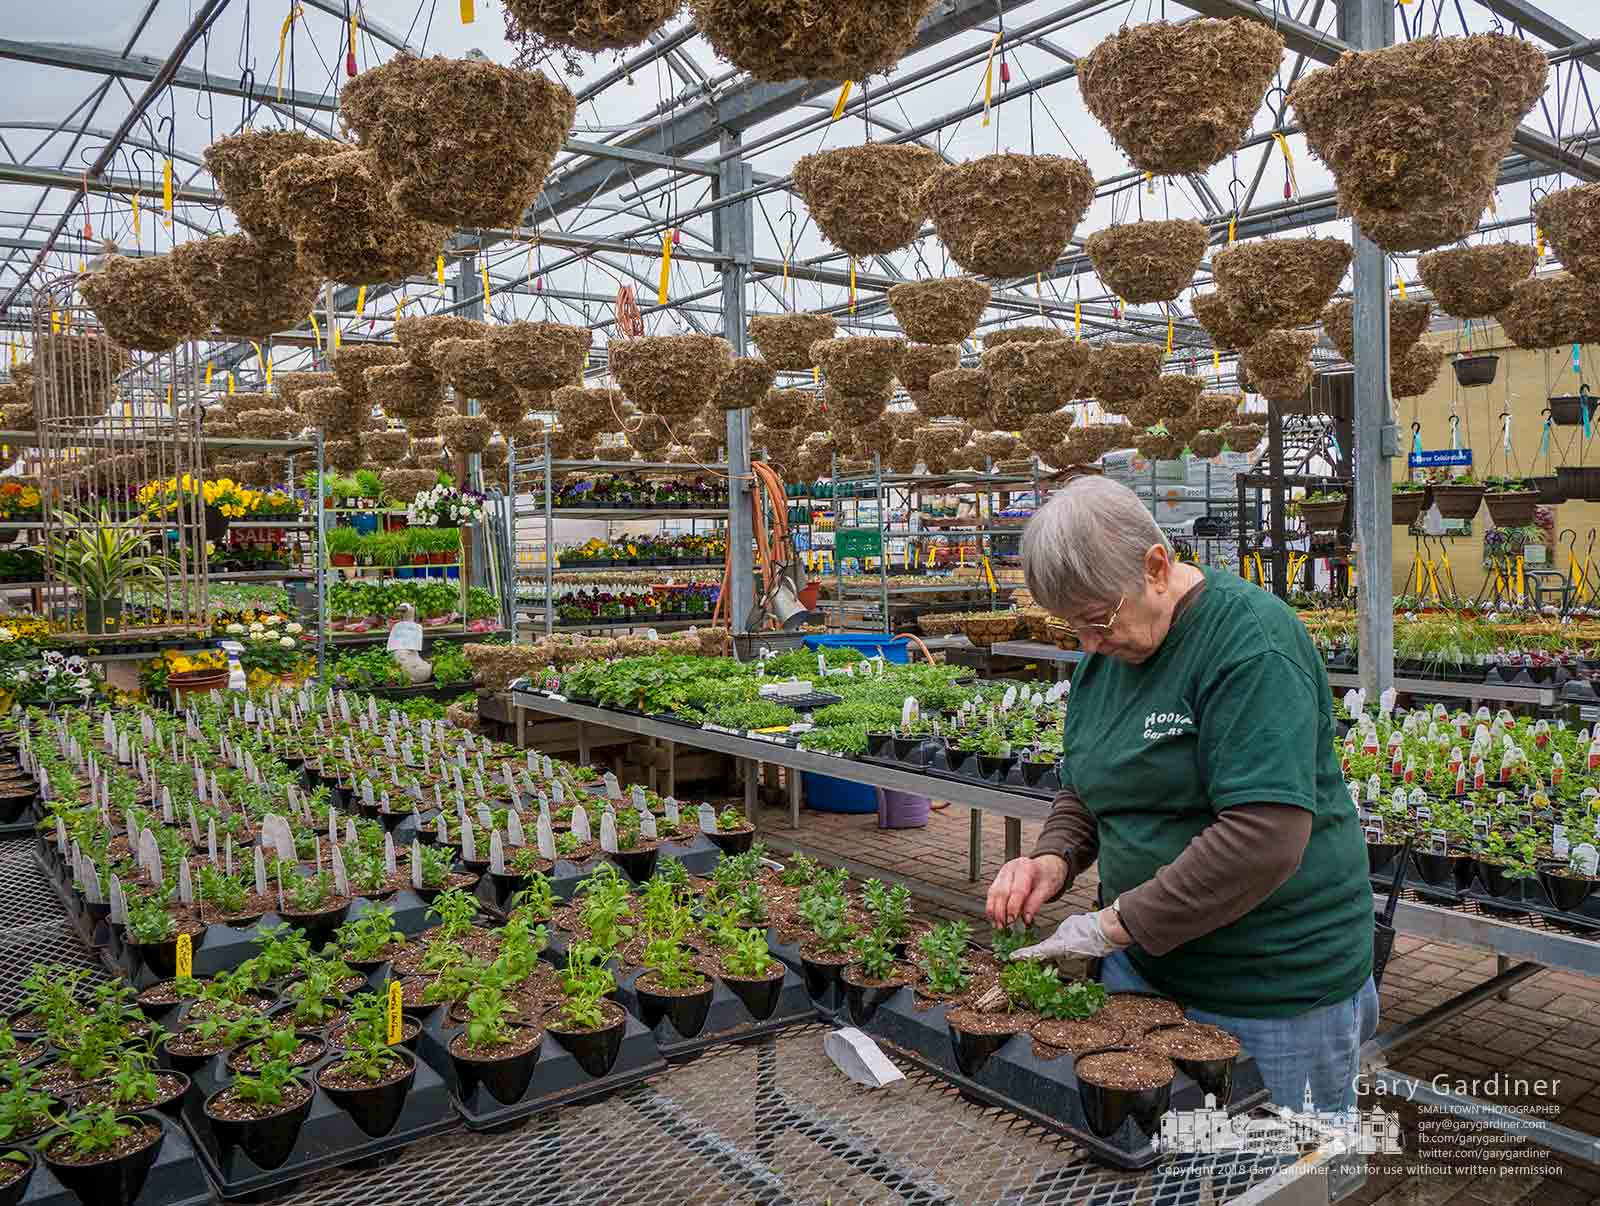 A gardener at Hoover Gardens places young annuals in pots as the nursery prepares itself for Spring planting although early forecasts for the first days of Spring include snow and freezing rain. My Final Photo for March 20, 2018.